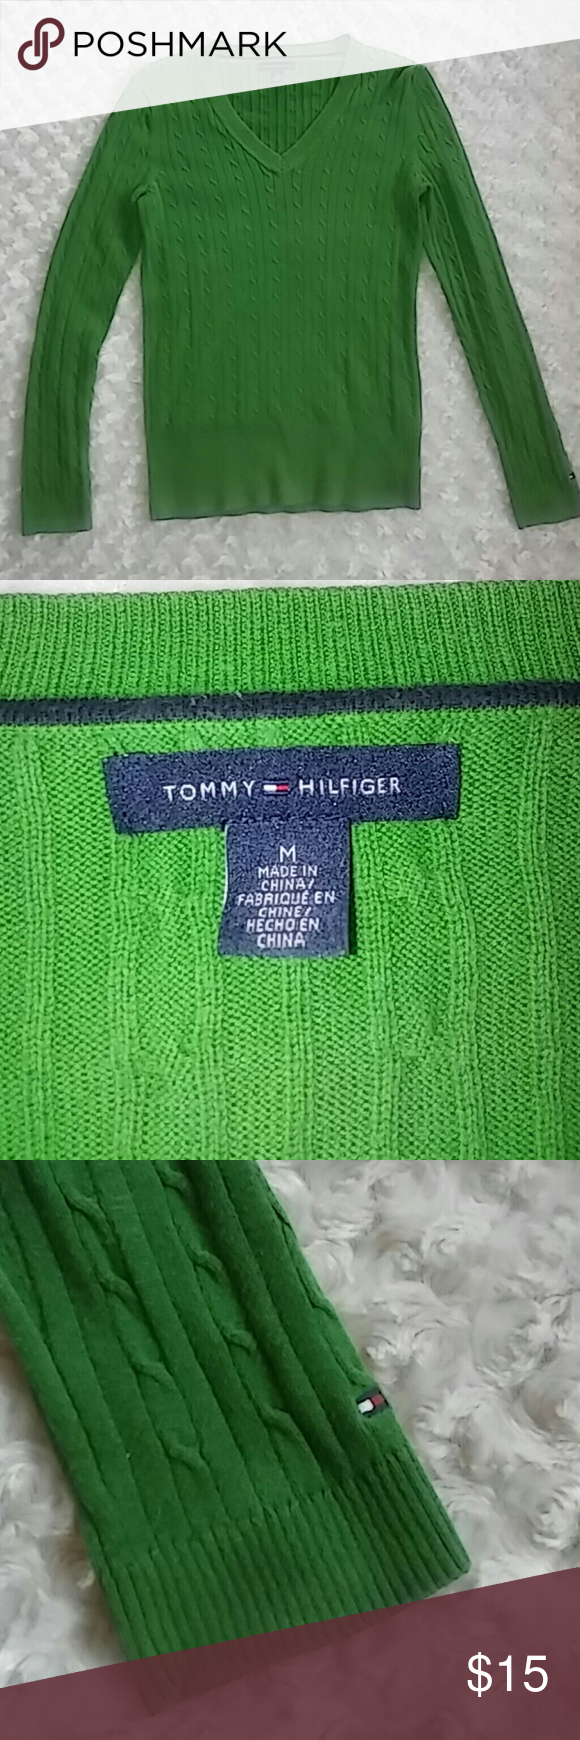 Tommy Hilfiger Cable Knit V Neck Sweater Sz M Chest 15.5in Shoulders 13.5in Sleeve 23in Length 24in Tommy Hilfiger Sweaters V-Necks